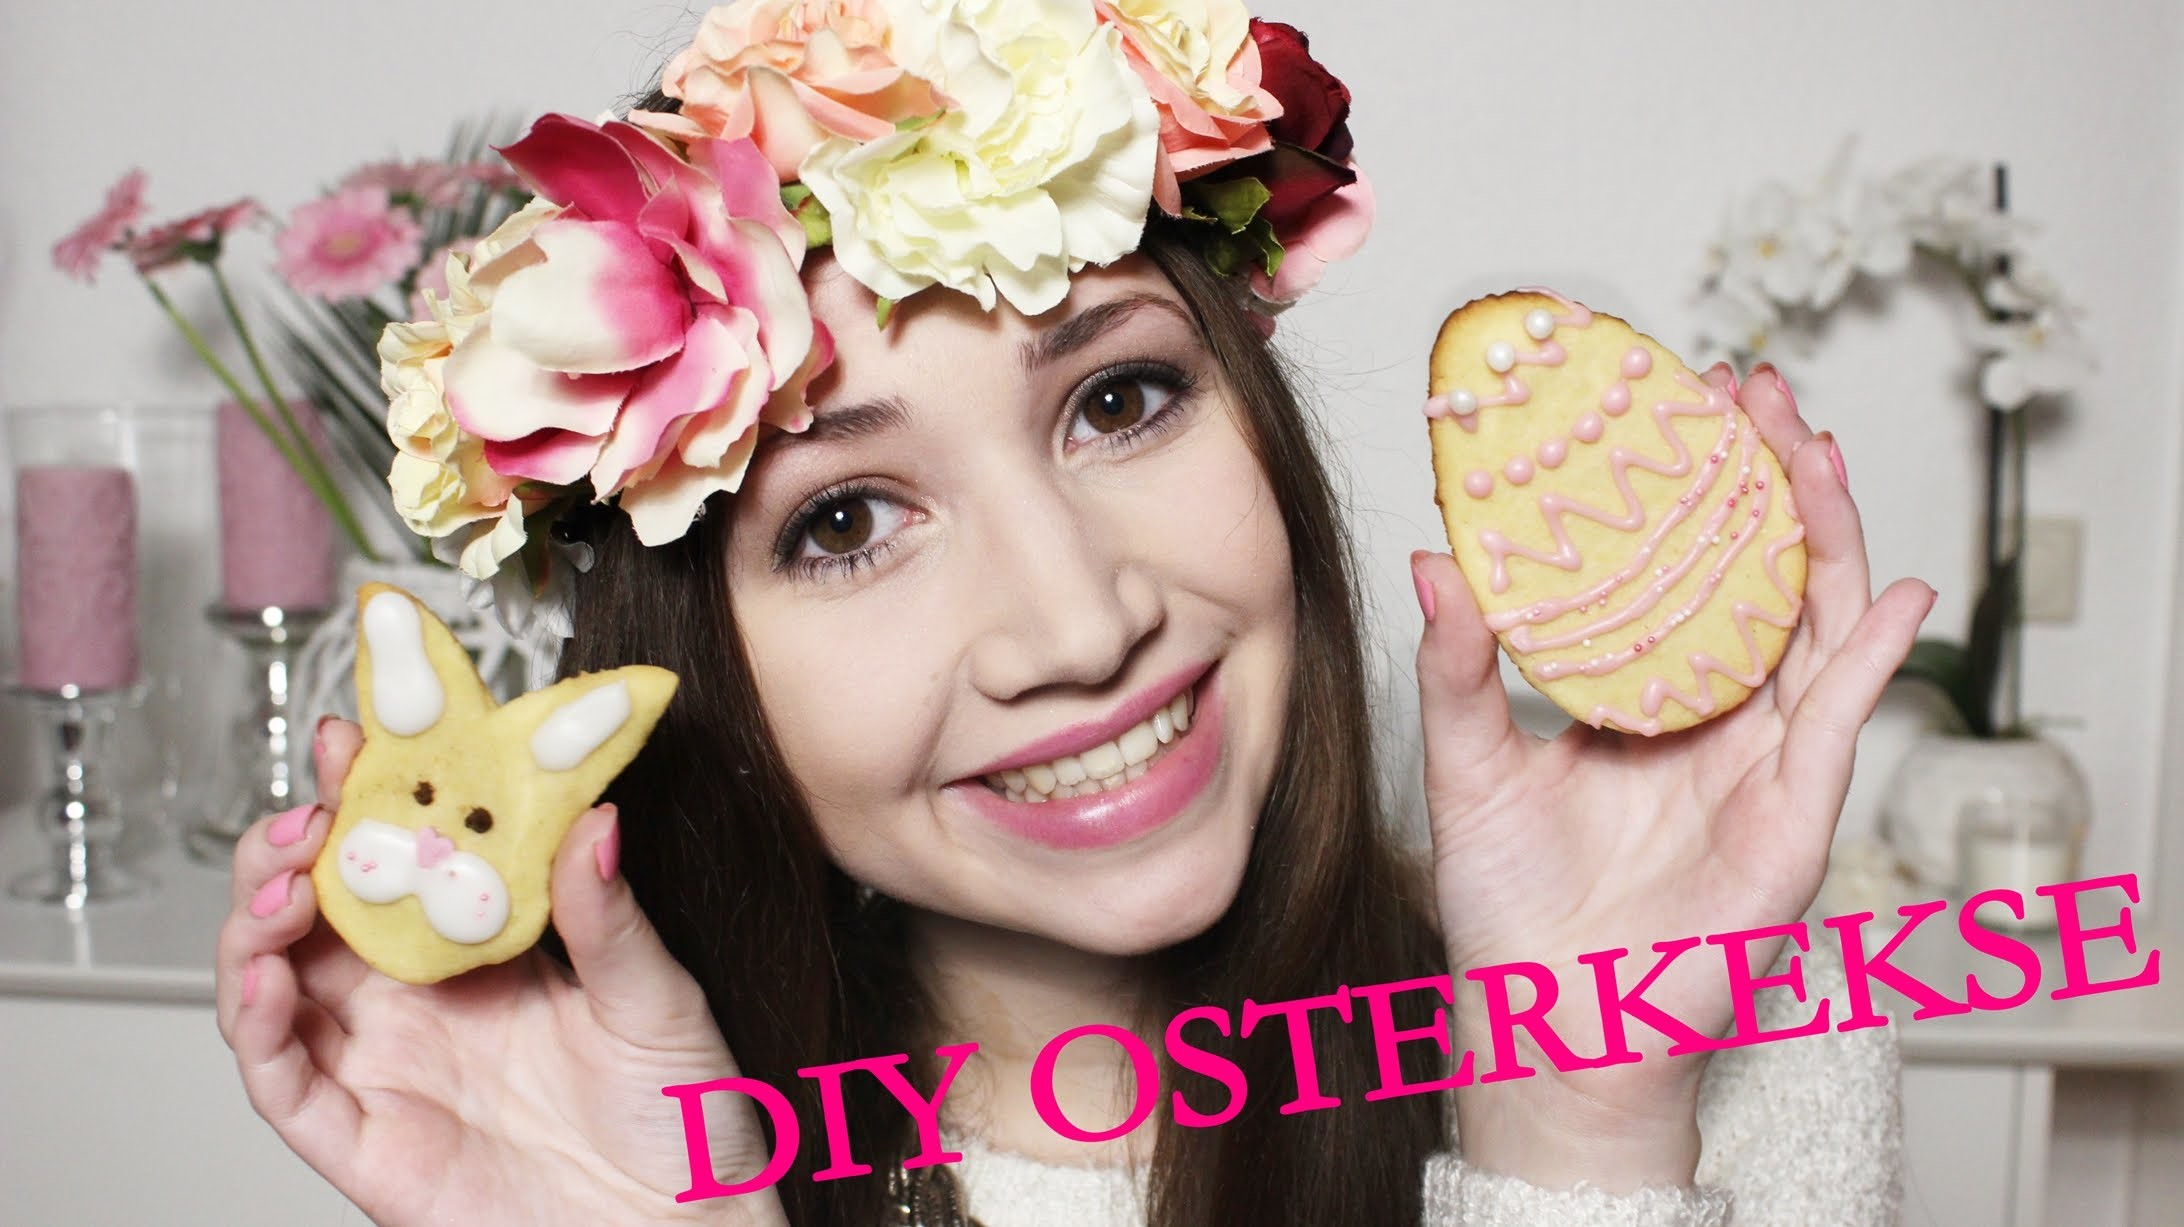 DIY OSTER KEKSE BACKEN || BAKING EASTER COOKIES || FROHE OSTERN